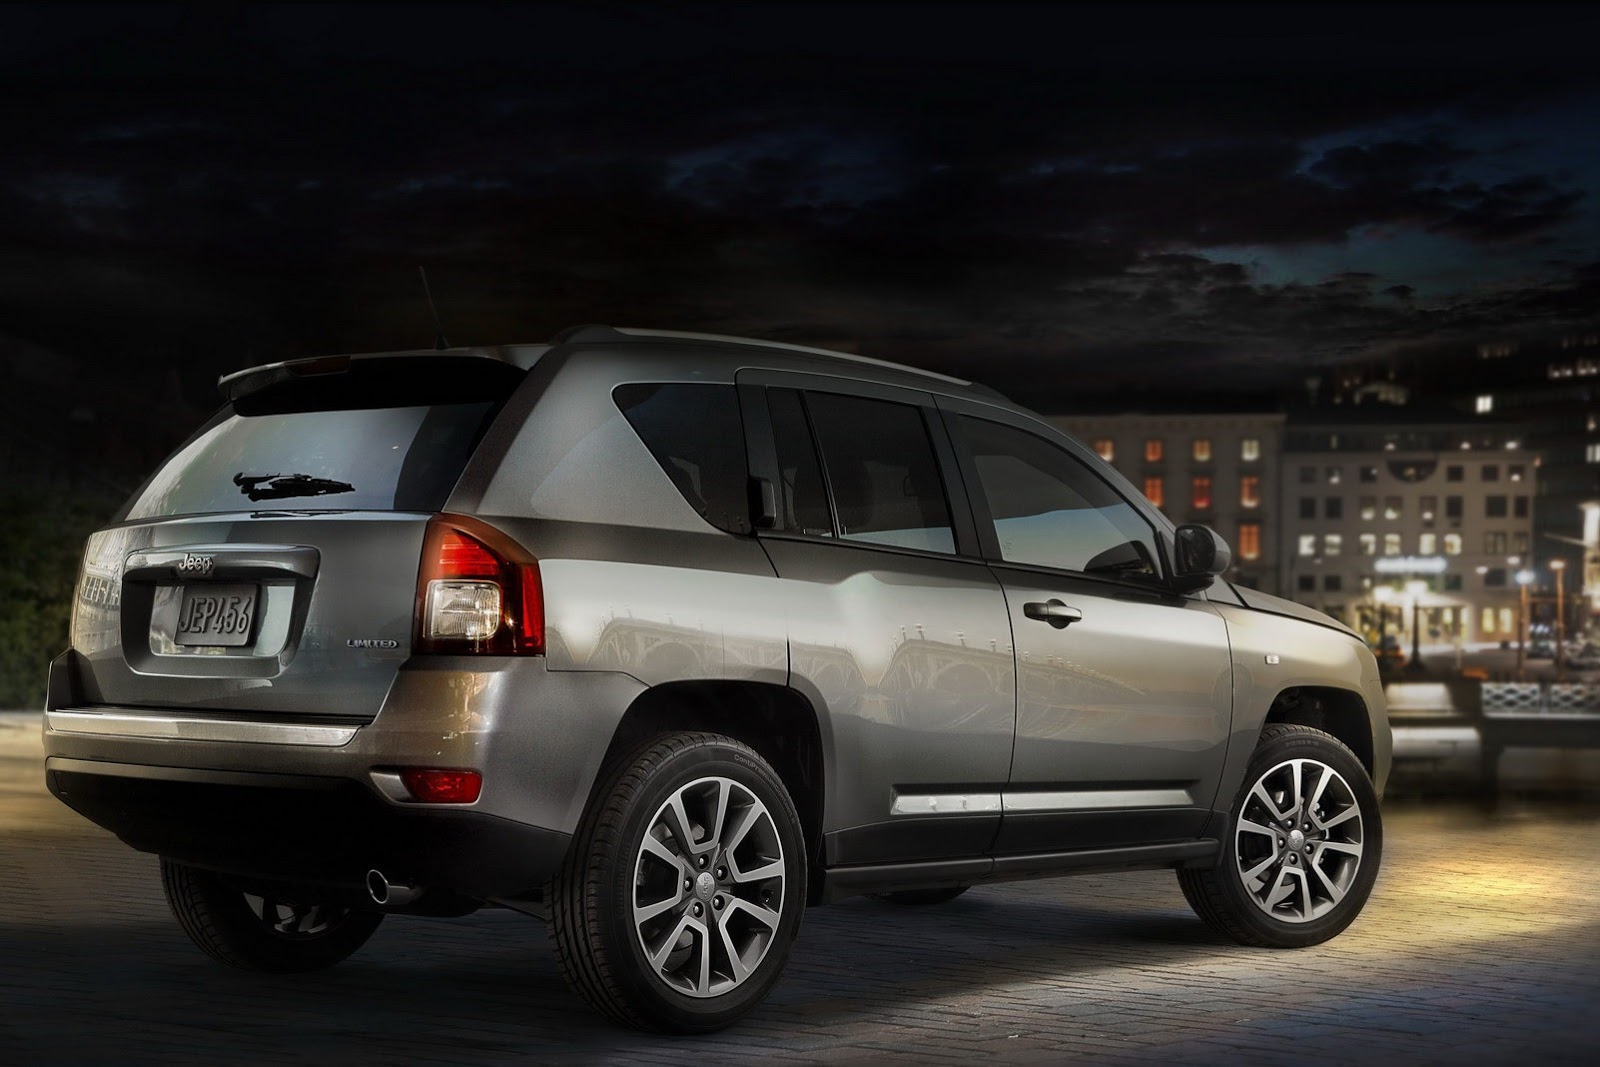 2014 jeep compass with new 6 speed auto heads to geneva for its european premiere. Black Bedroom Furniture Sets. Home Design Ideas